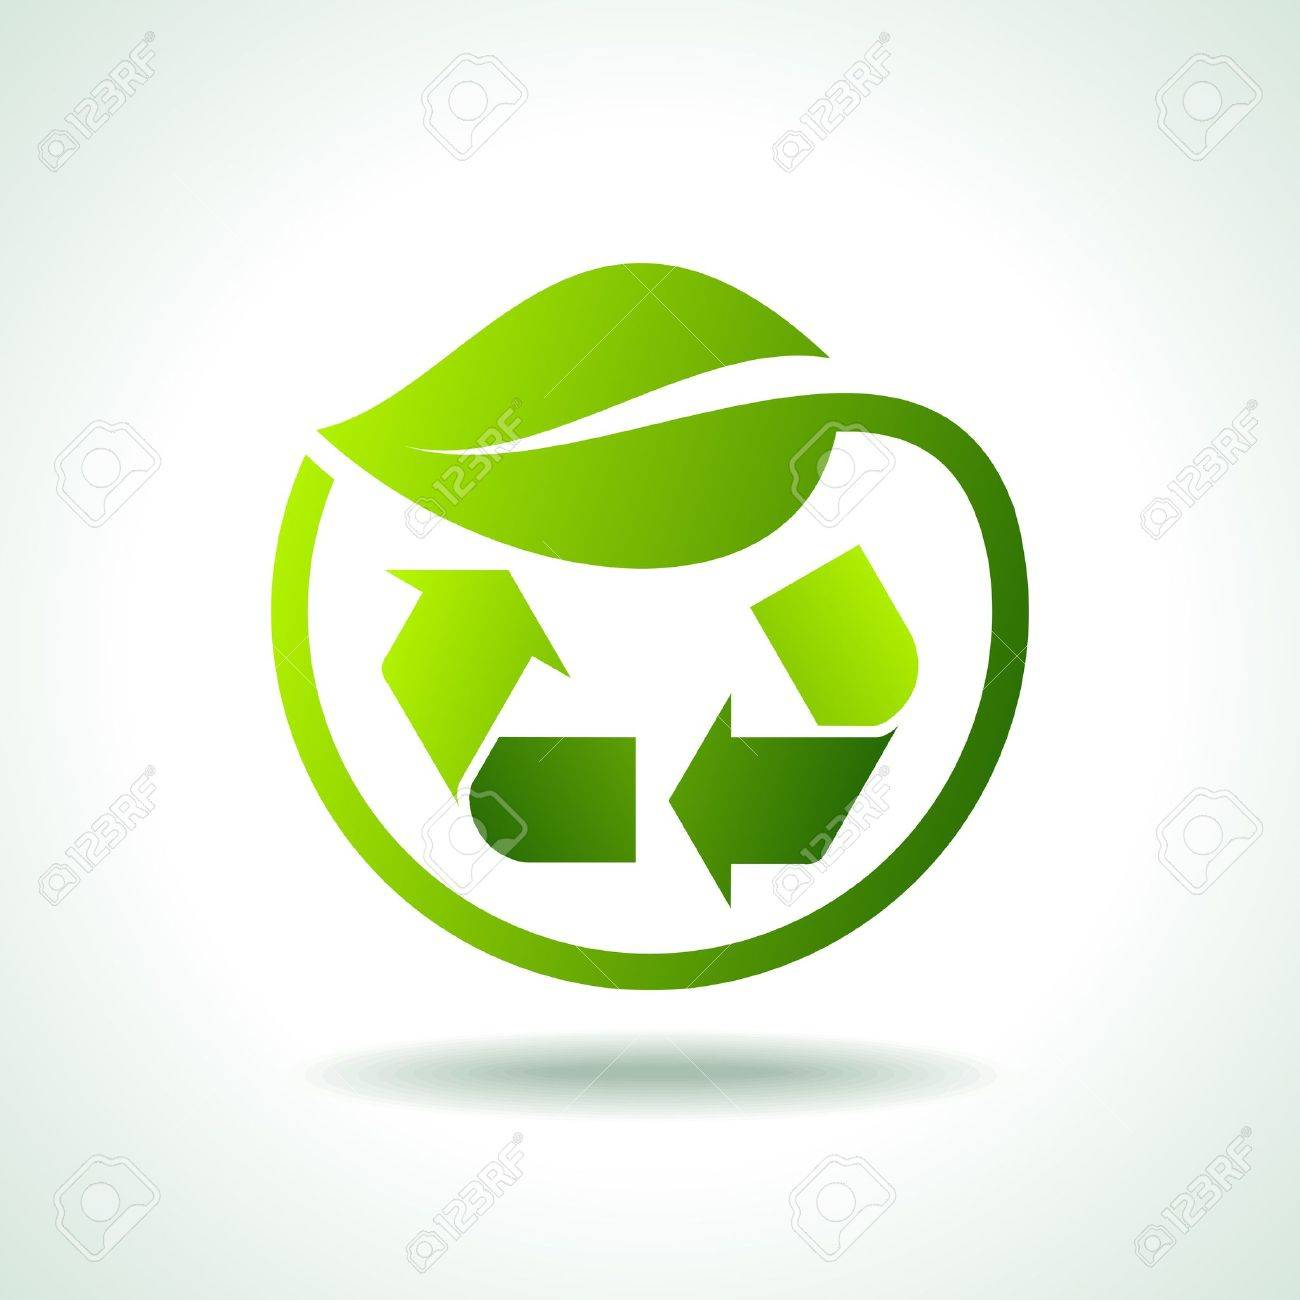 illustration of recycle symbol with leaf icon Stock Vector - 17636945